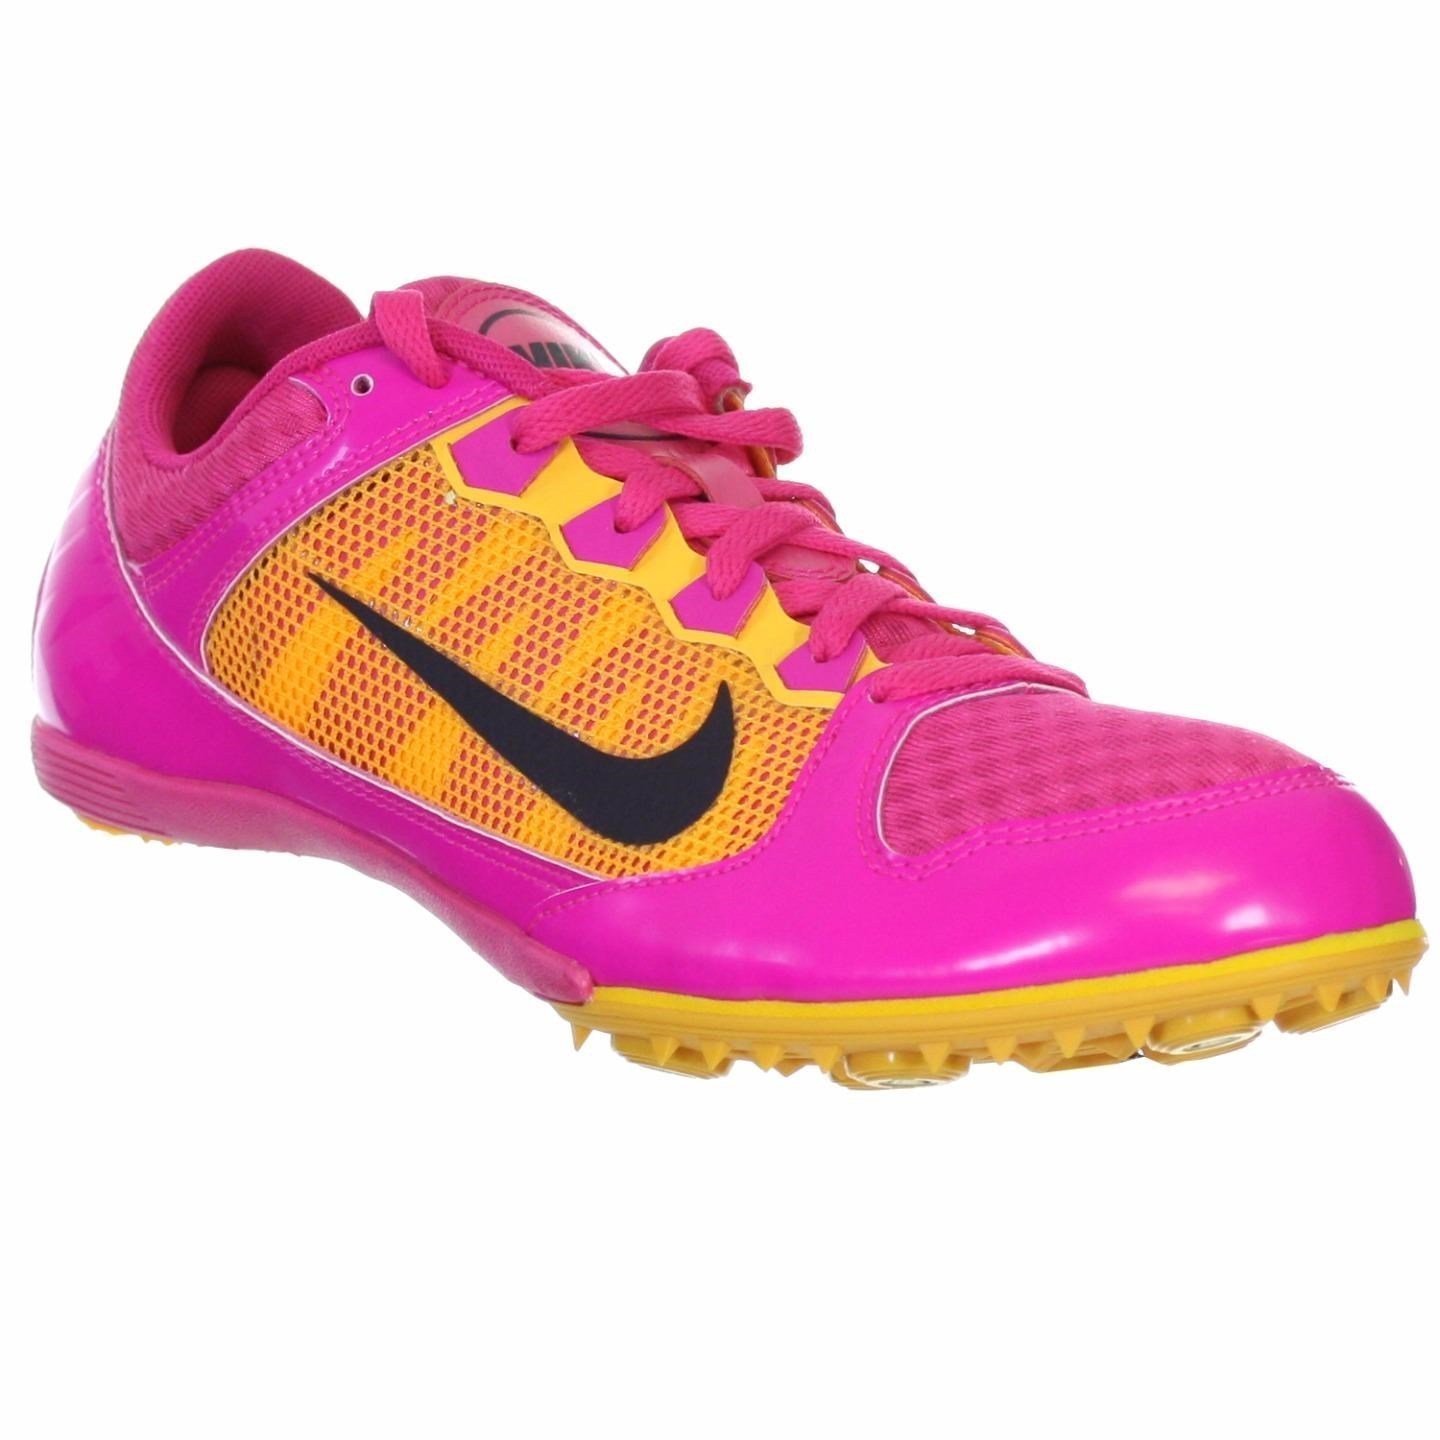 new product f35a8 c21a0 NIKE WOMENS ZOOM RIVAL MD7 RASPBERRY PINK FOIL SPIKED TRACK SHOE US 9 M